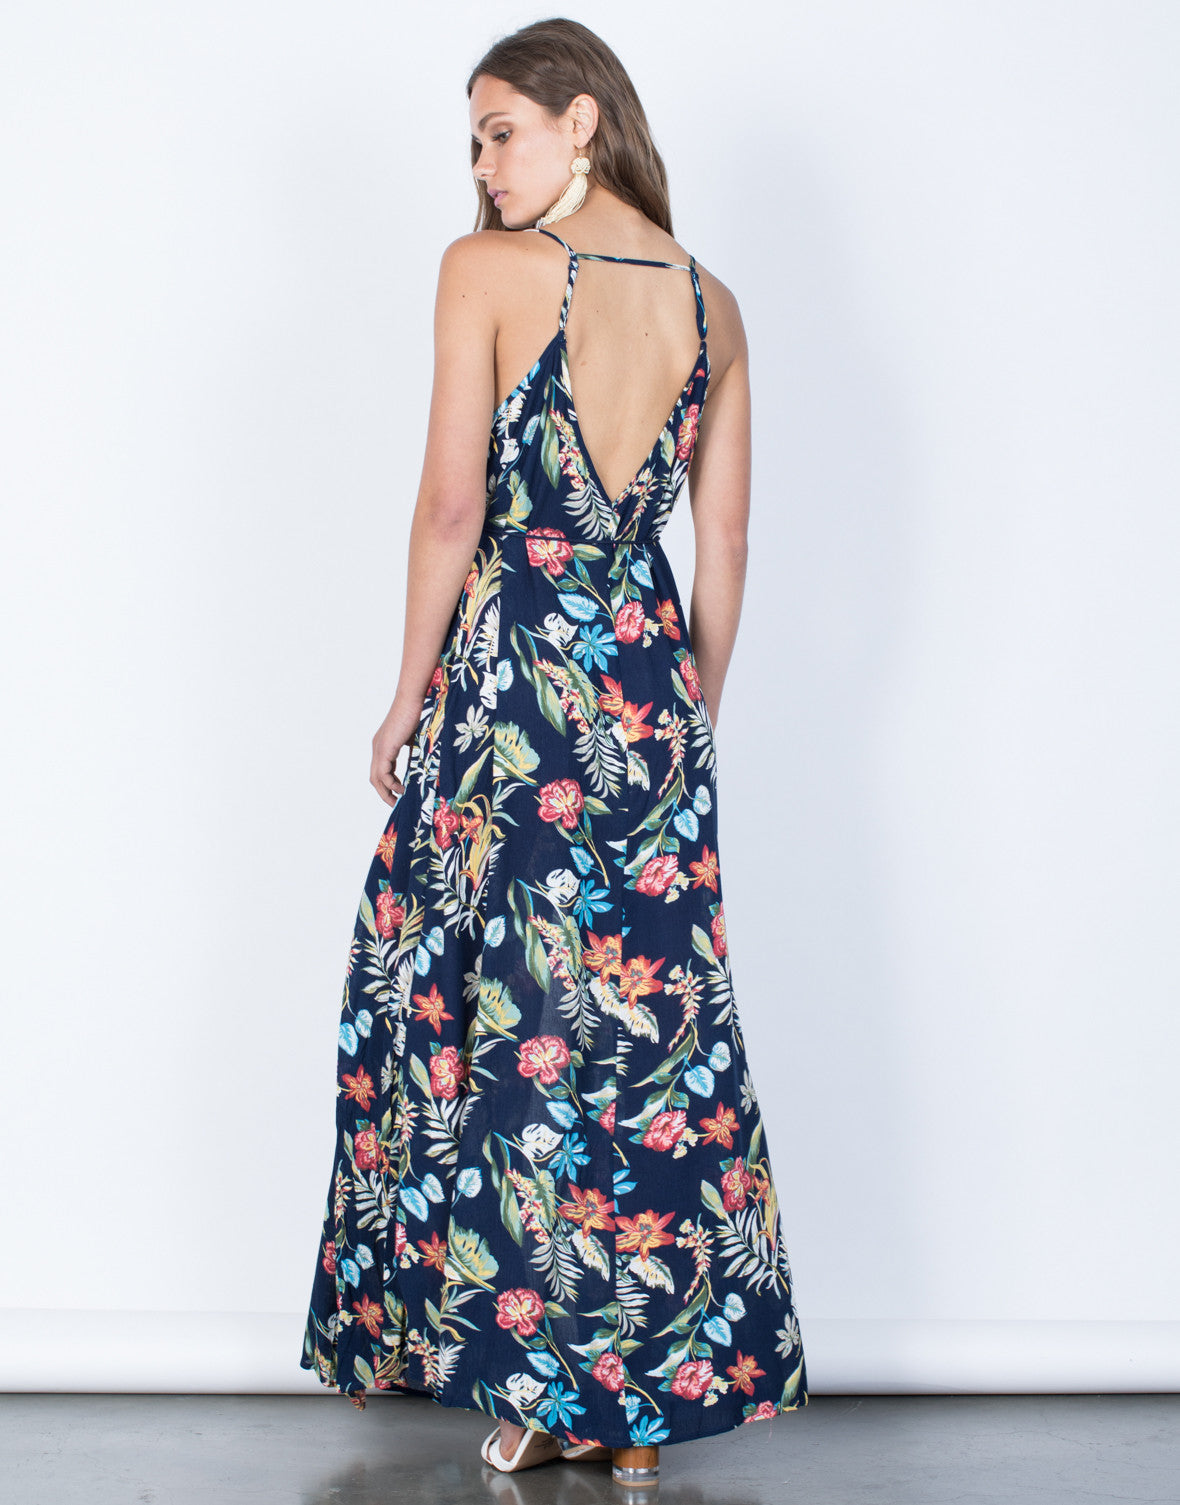 Back View of Feelin' Tropical Dress